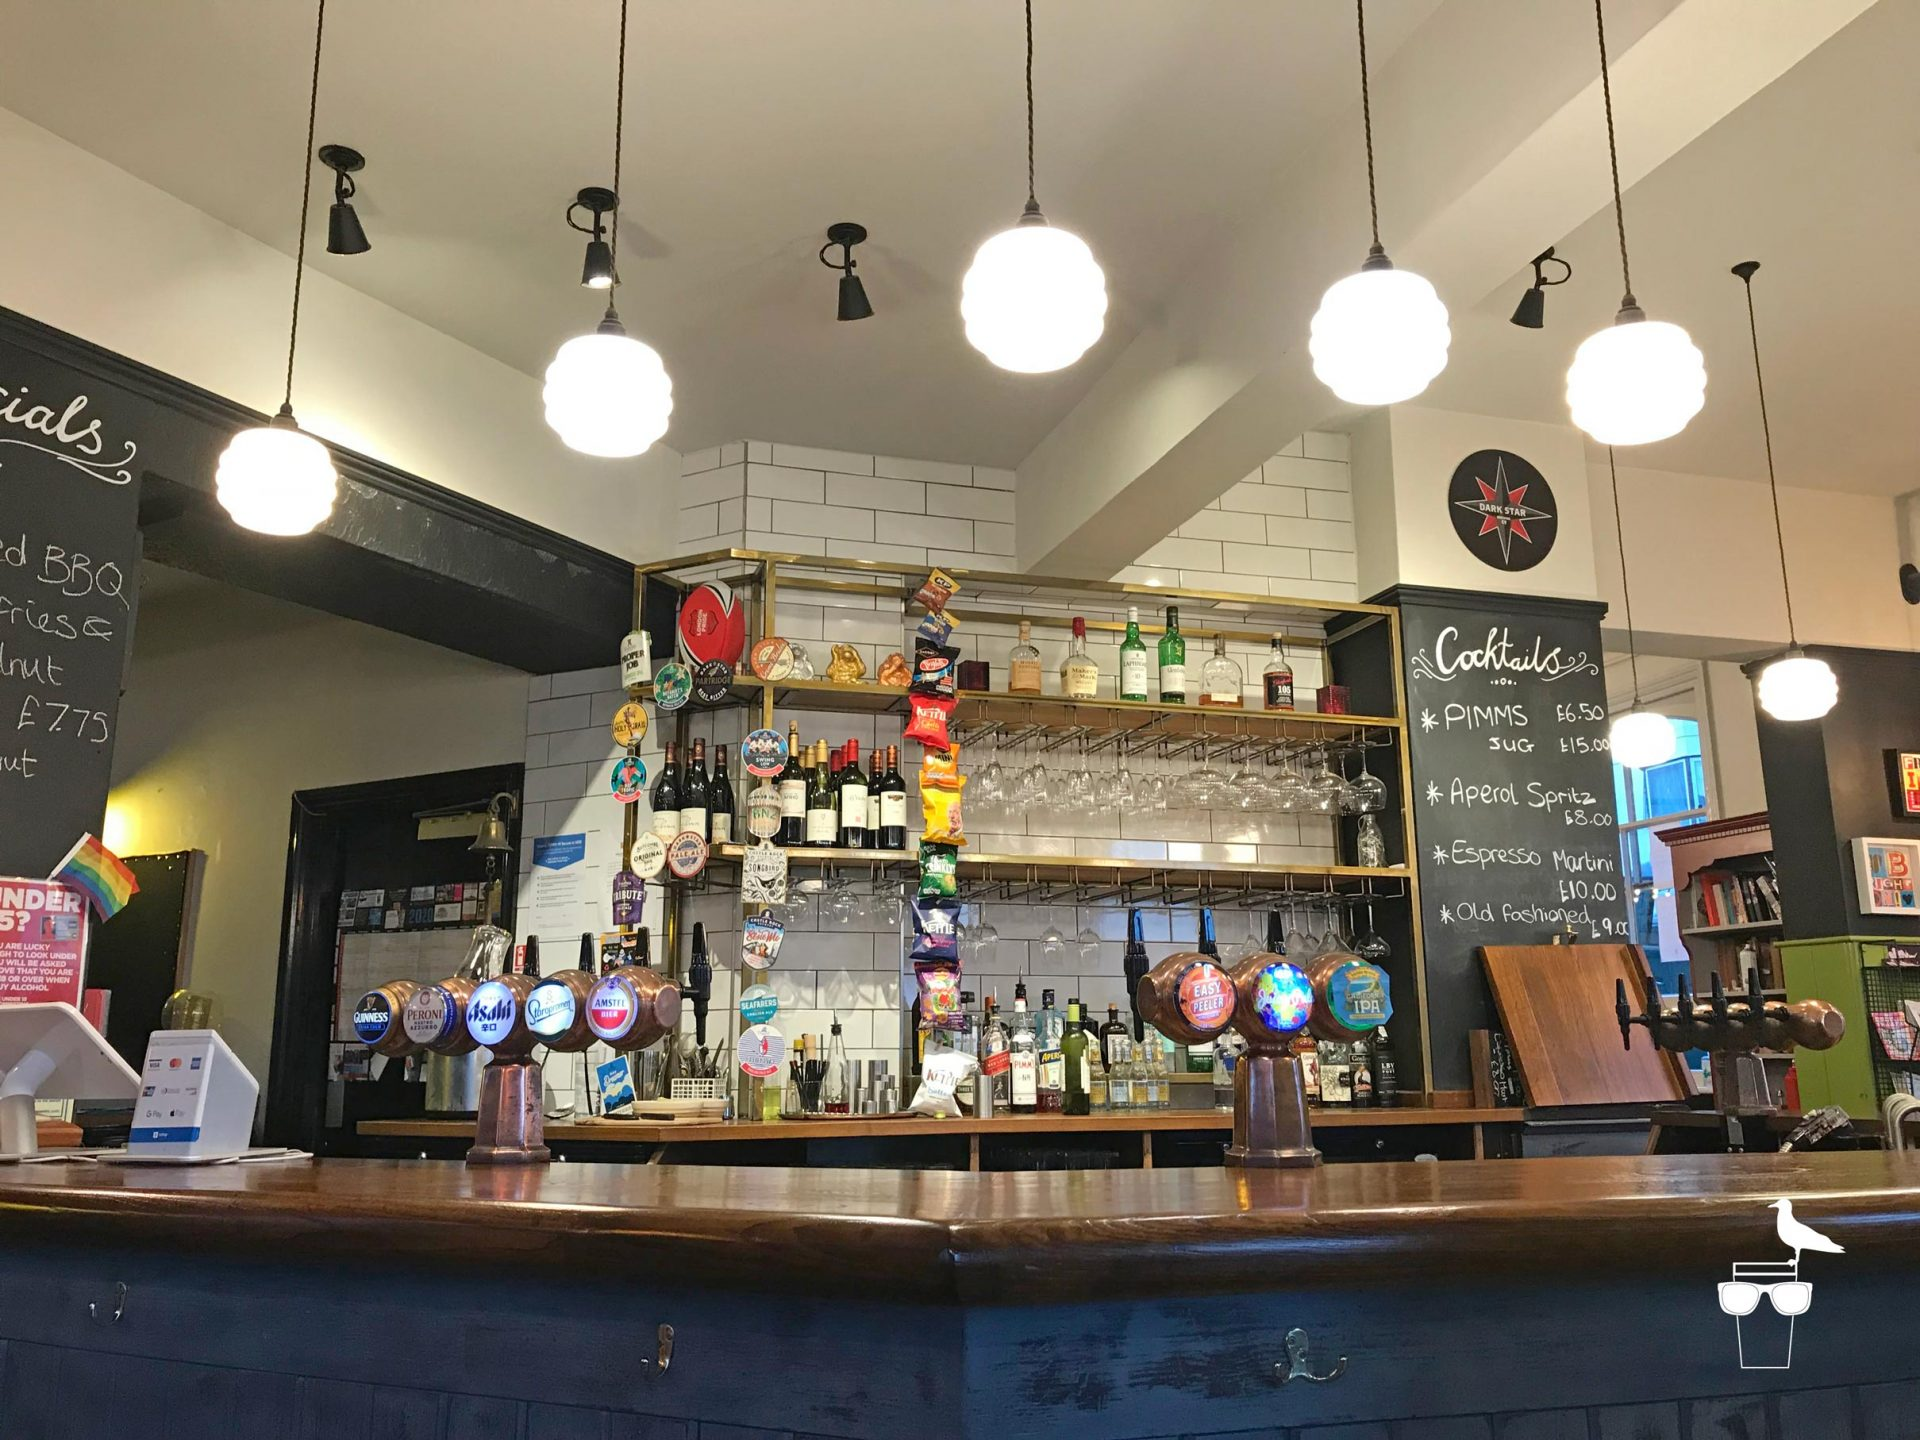 the-prestonville-arms-pub-brighton-inside-bar-and-taps